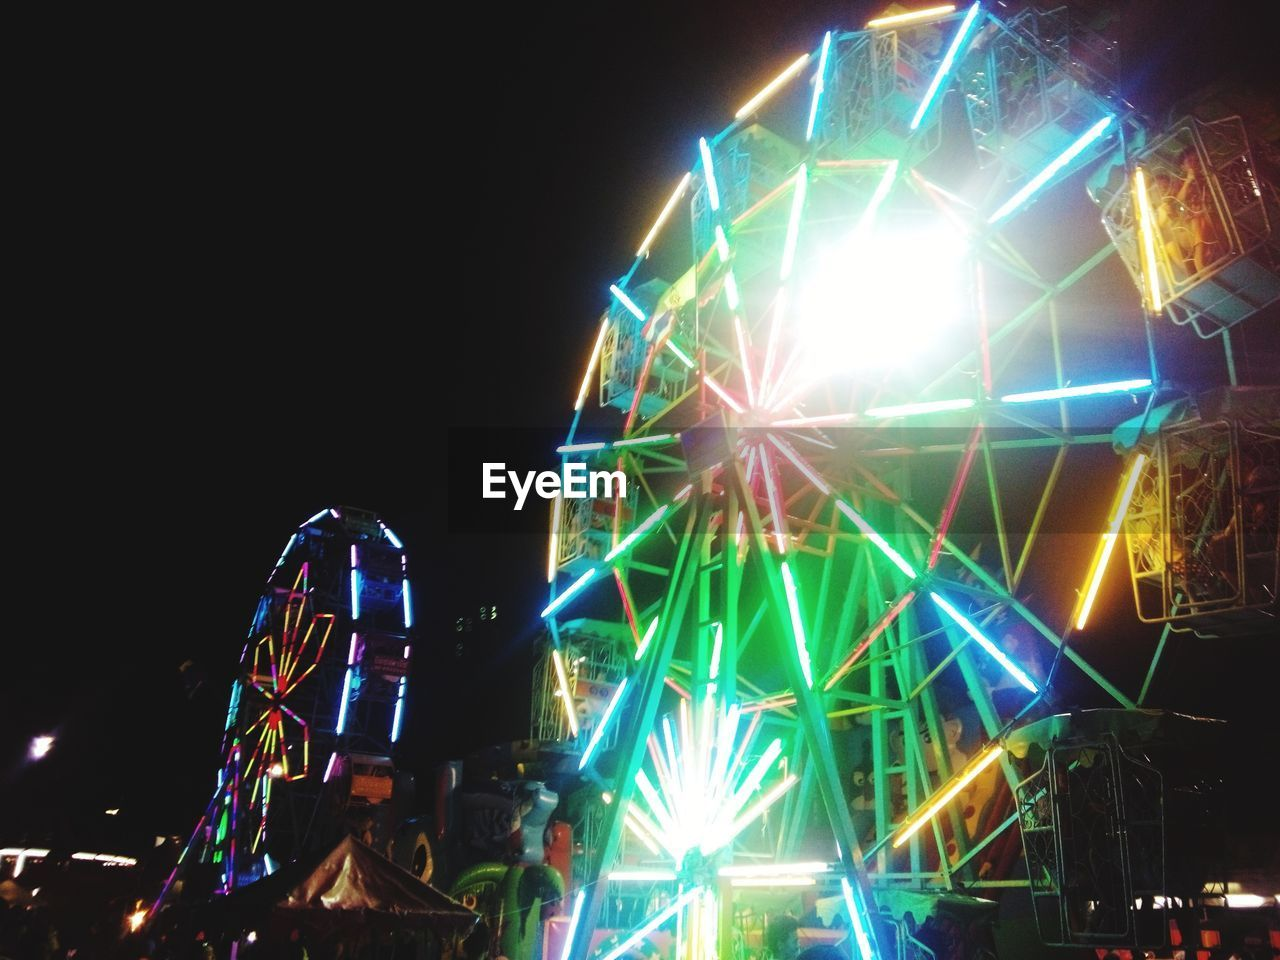 arts culture and entertainment, night, illuminated, amusement park, nightlife, fun, low angle view, leisure activity, enjoyment, amusement park ride, outdoors, no people, popular music concert, sky